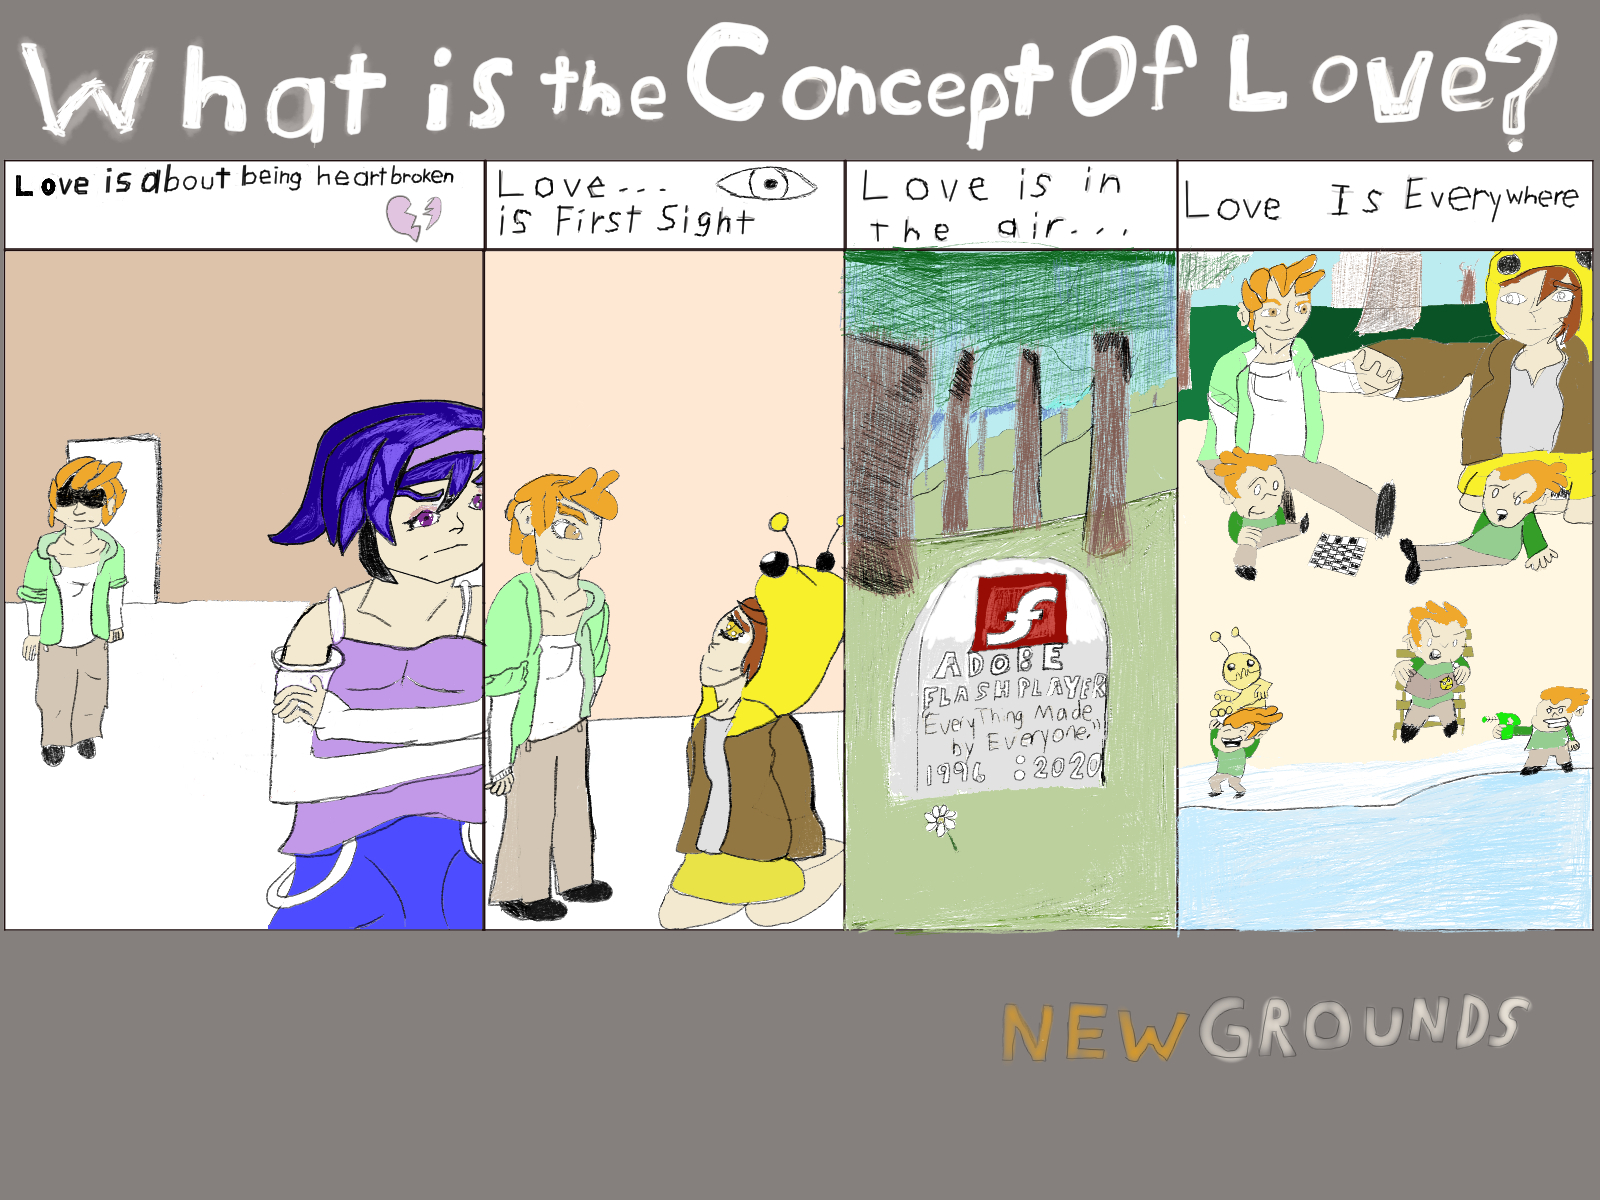 What Is the concept of love by Ethan Blair